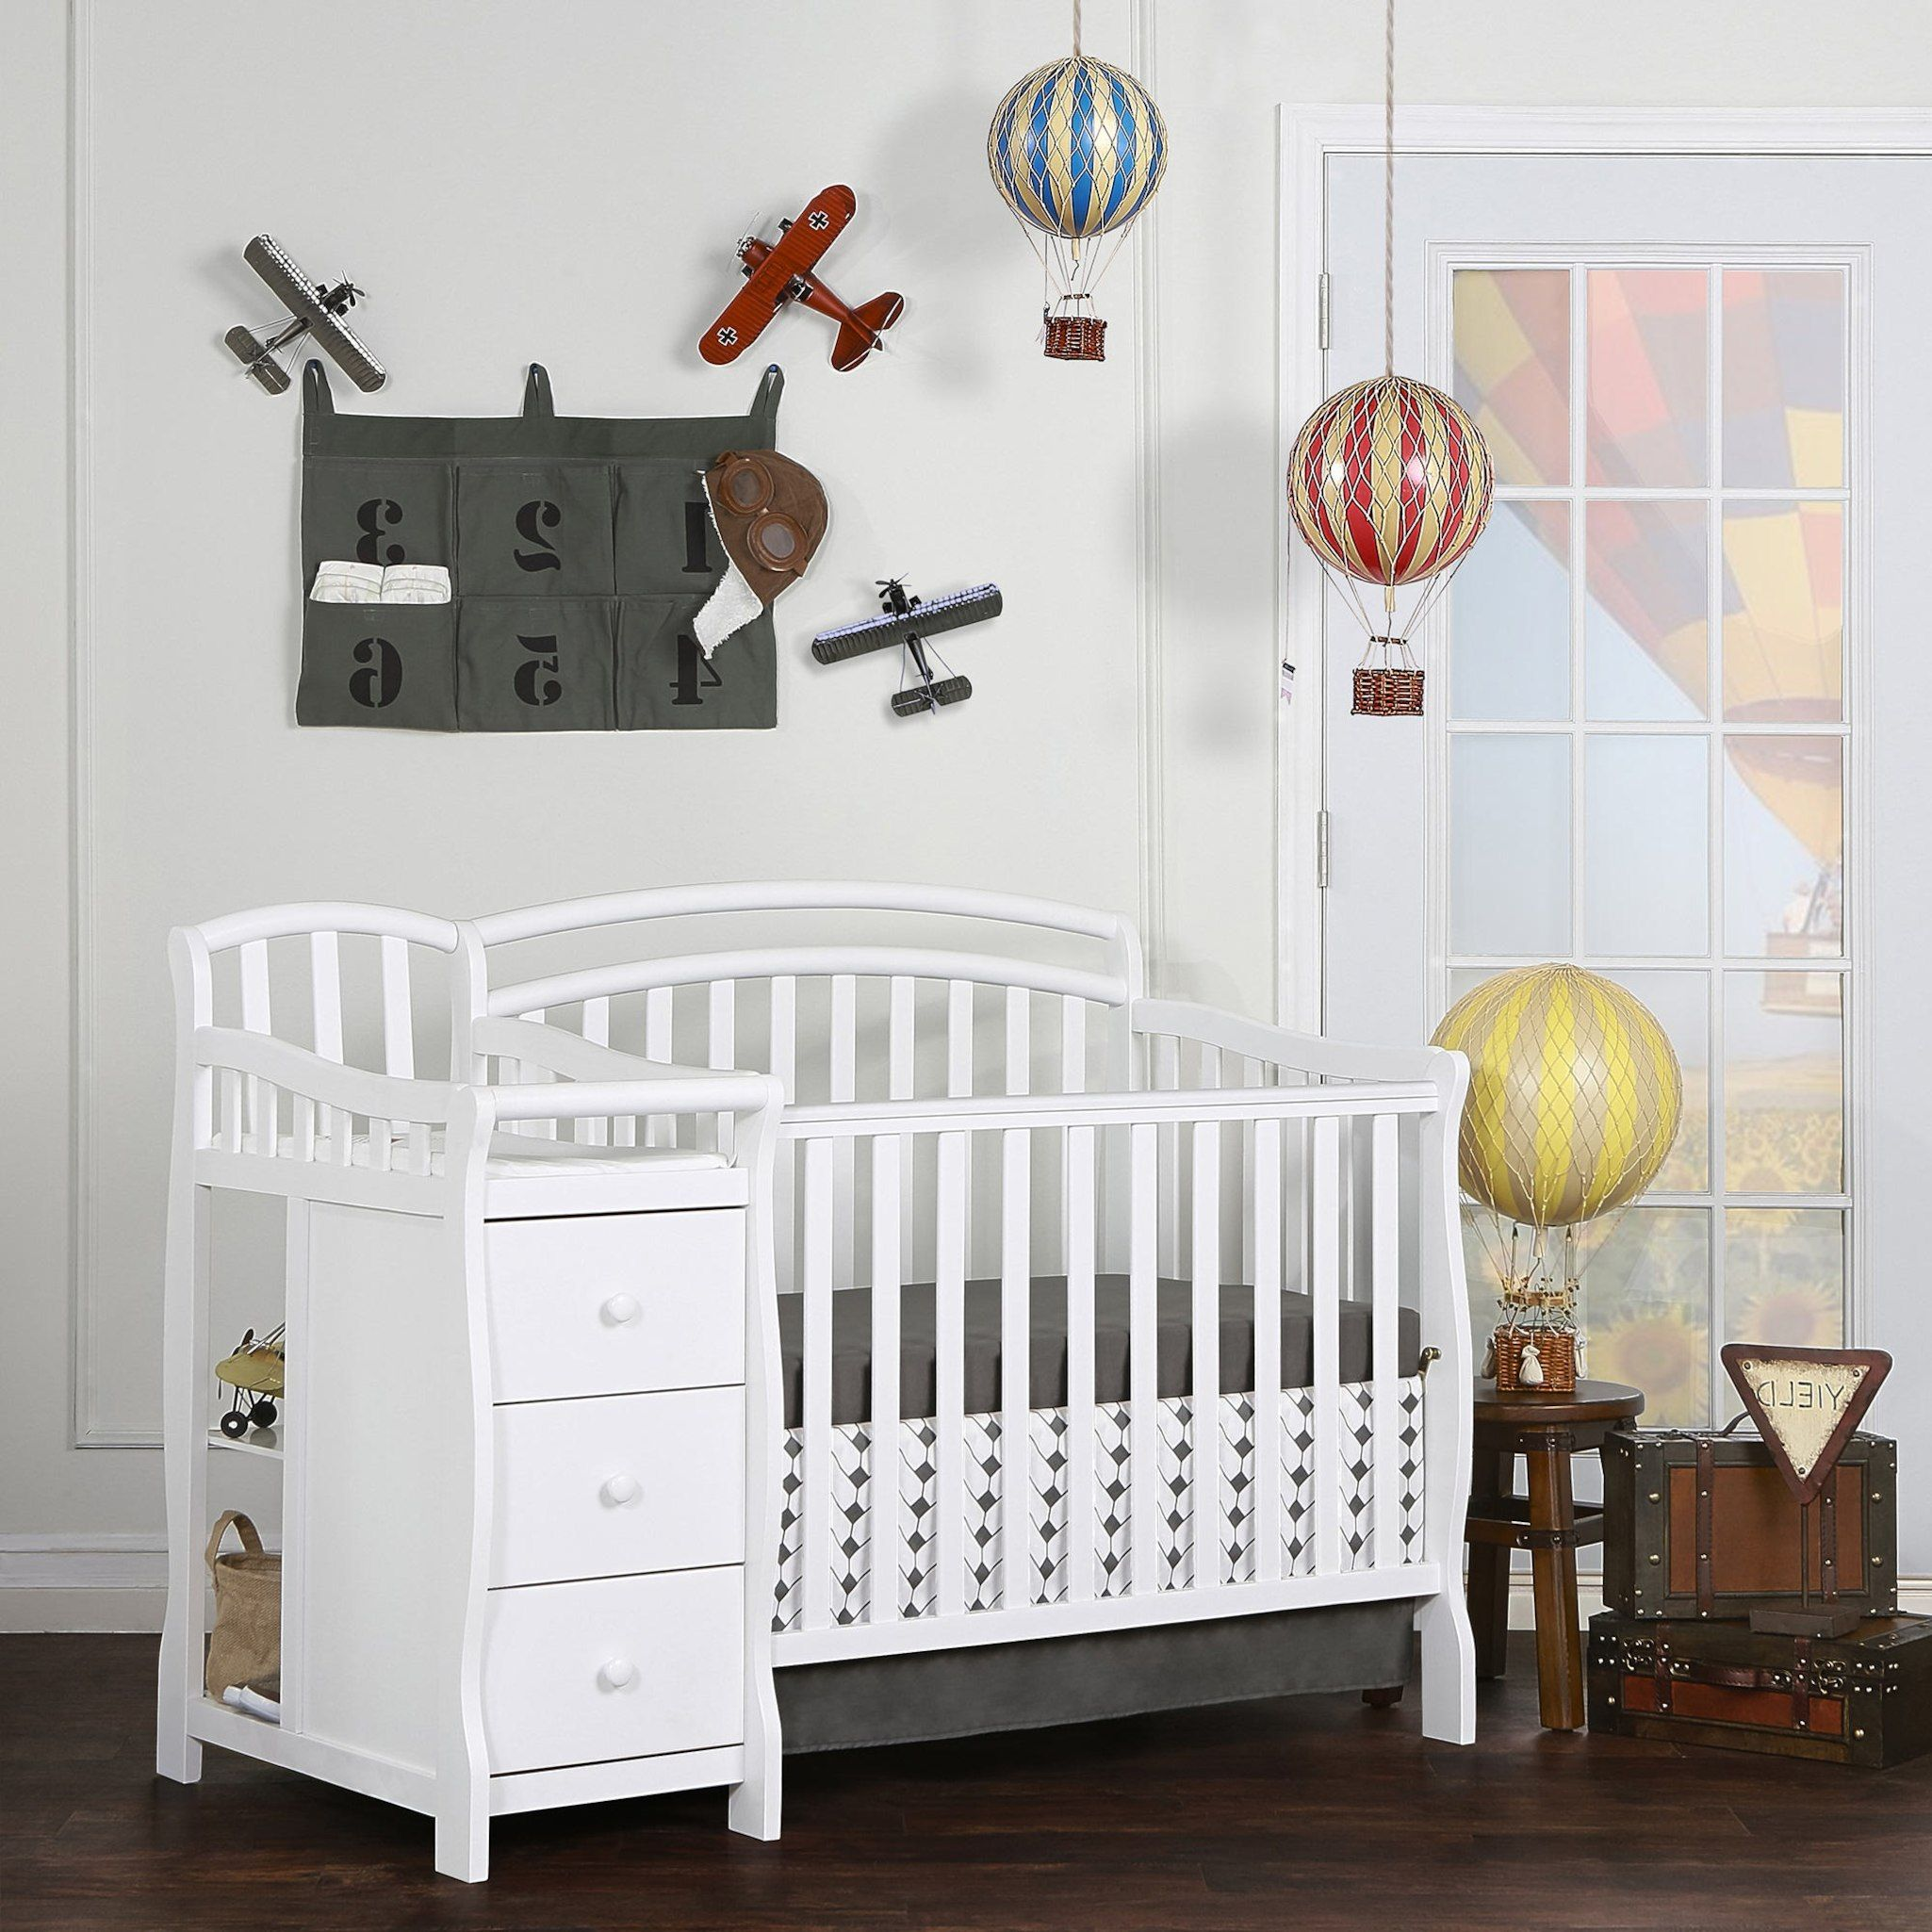 bo combo new table of us garbageland changing best white archives changer crib reviews cribs dresser